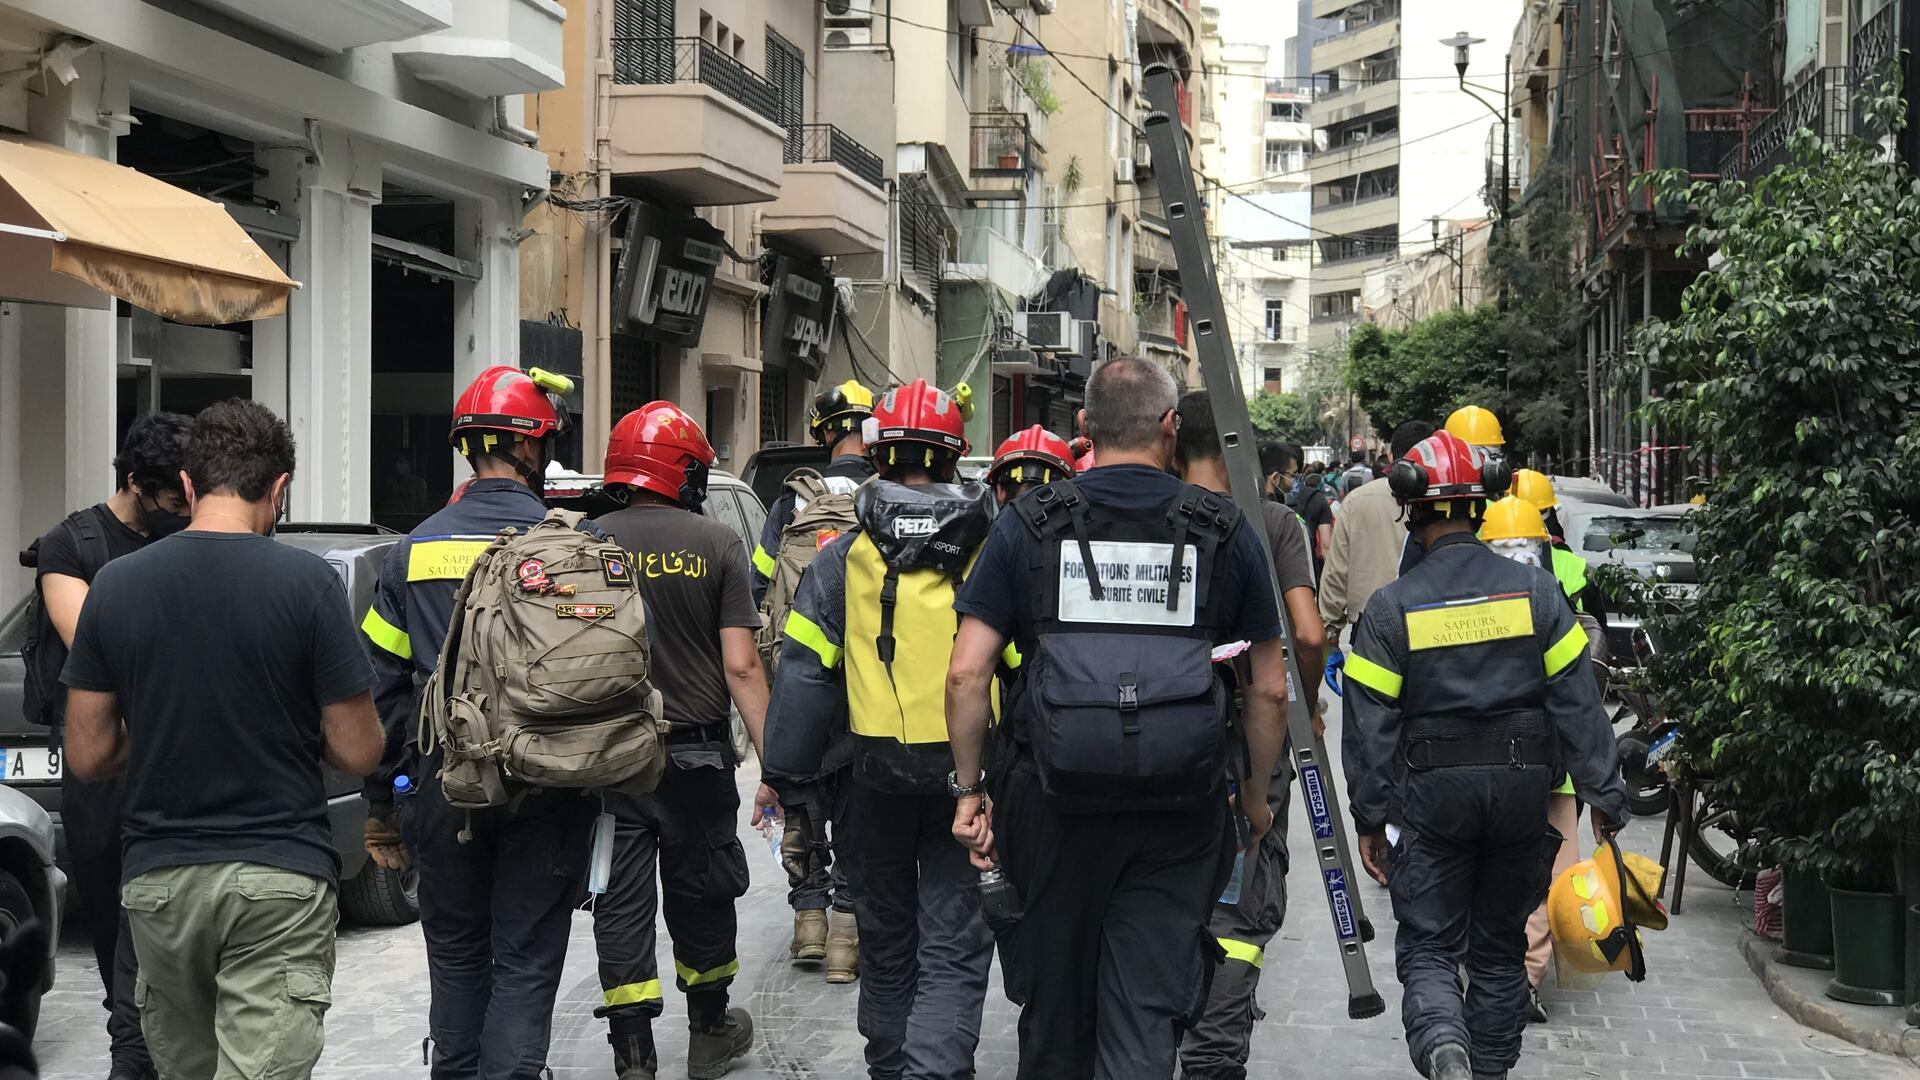 Firefighters walk down a street in Beirut, Lebanon after the Aug. 4 explosion